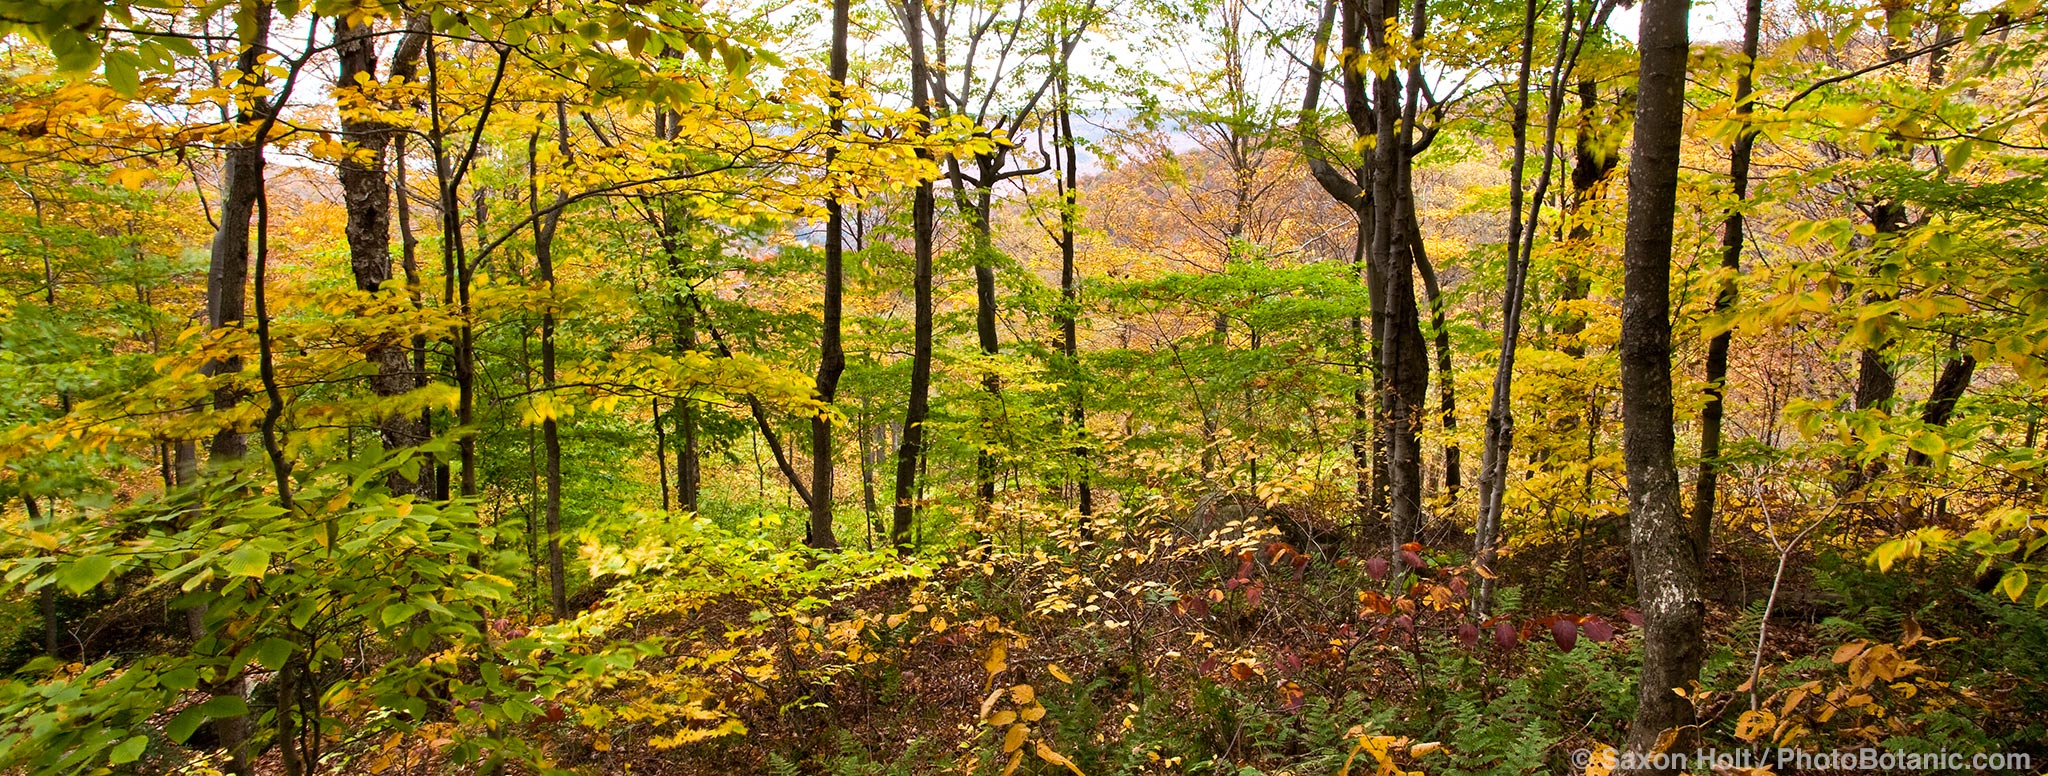 New England woodland in autumn